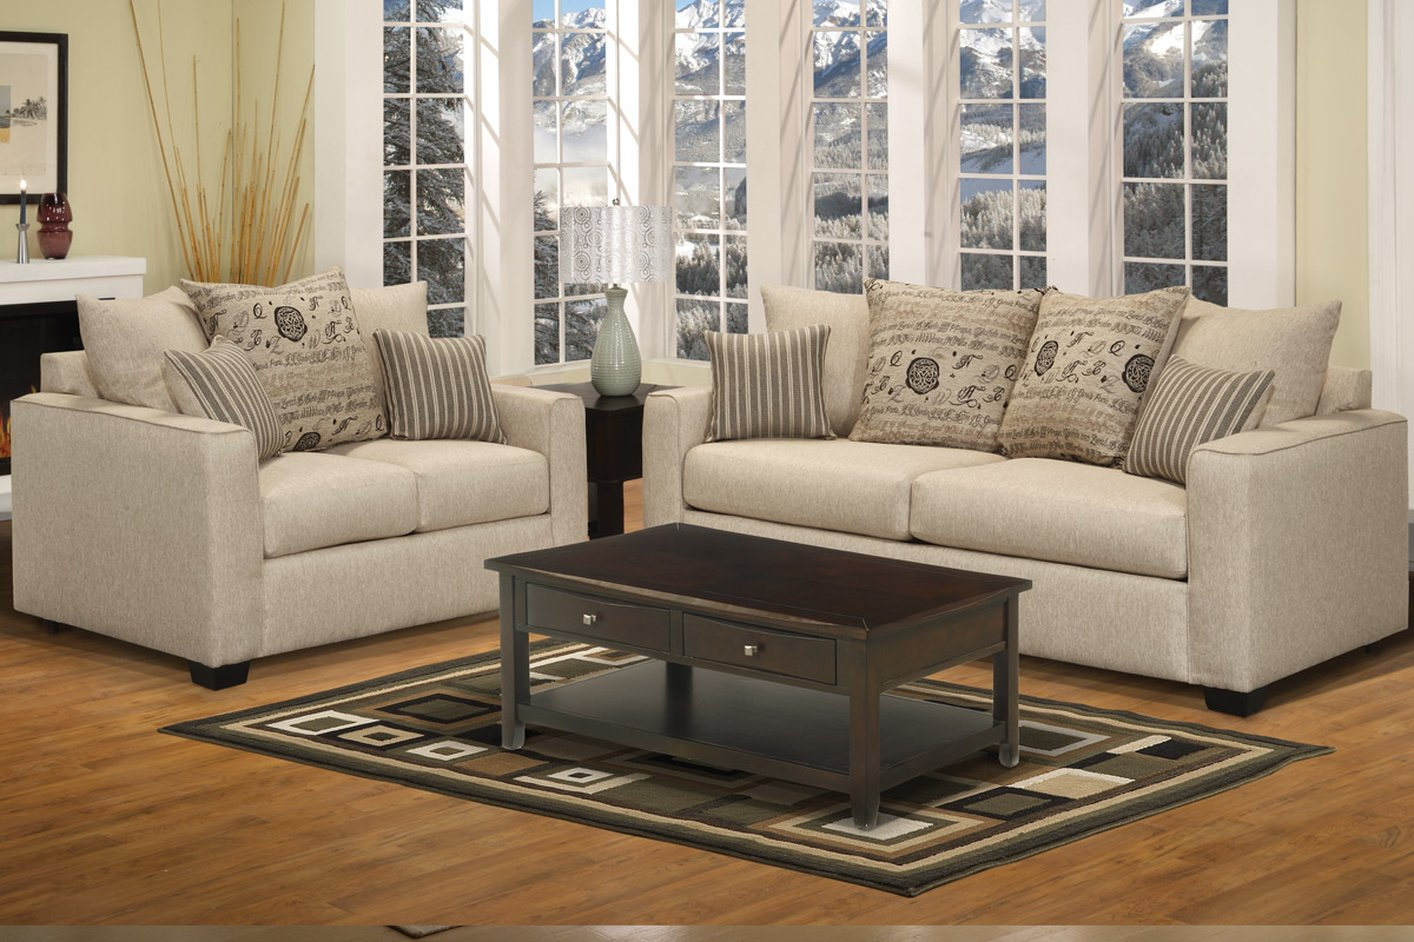 Fullsize Of Couch And Loveseat